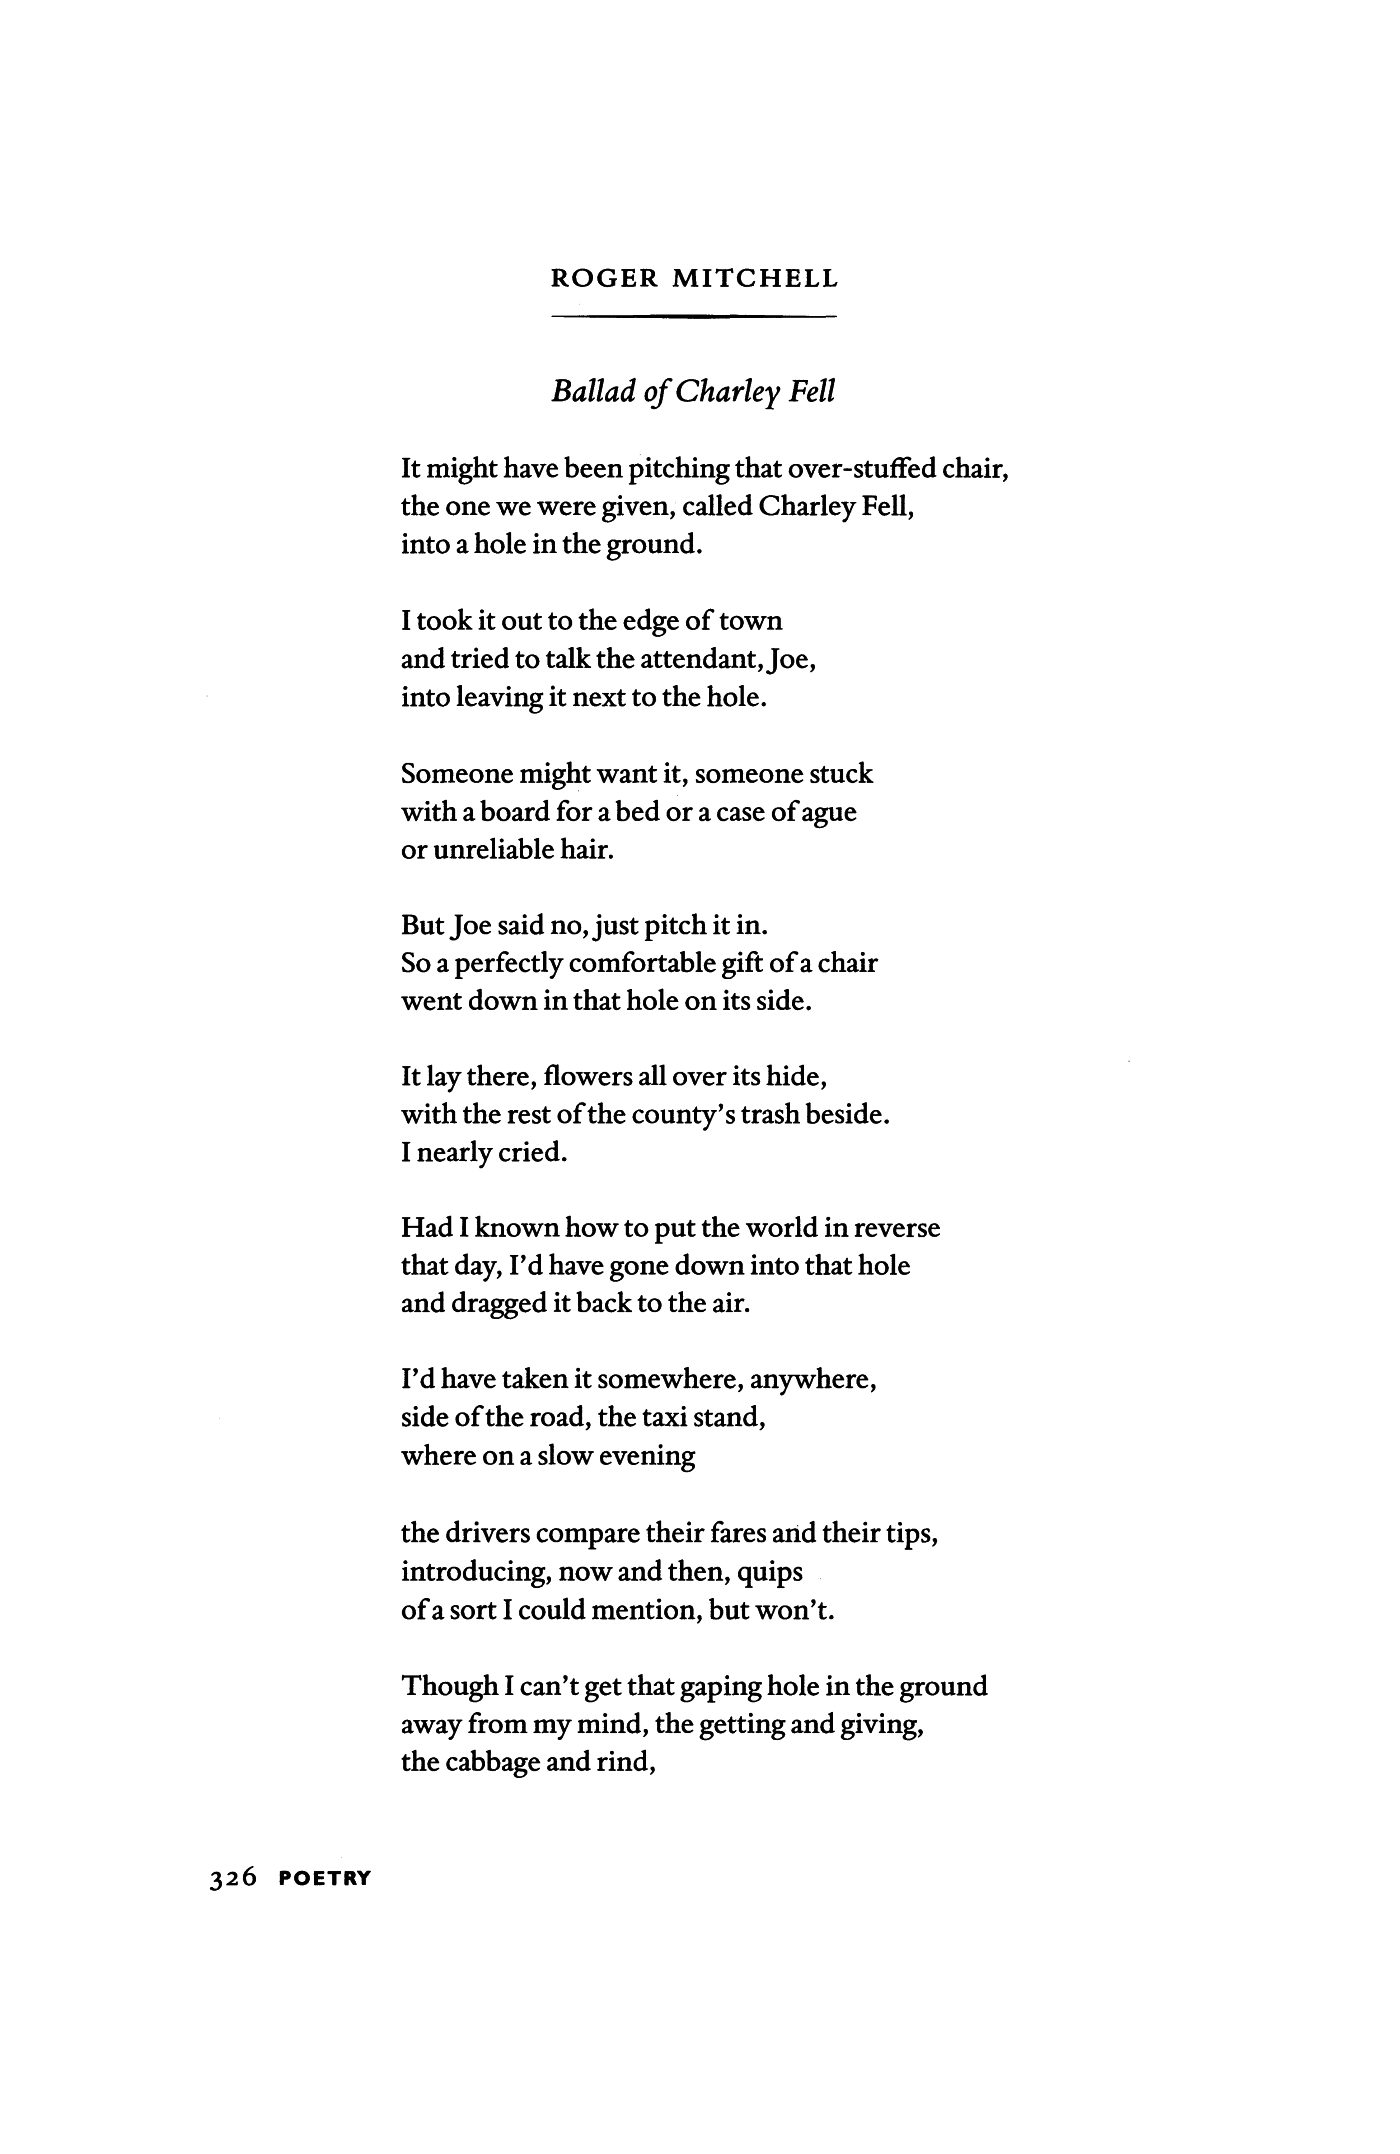 ballad of charley fell by roger mitchell poetry magazine